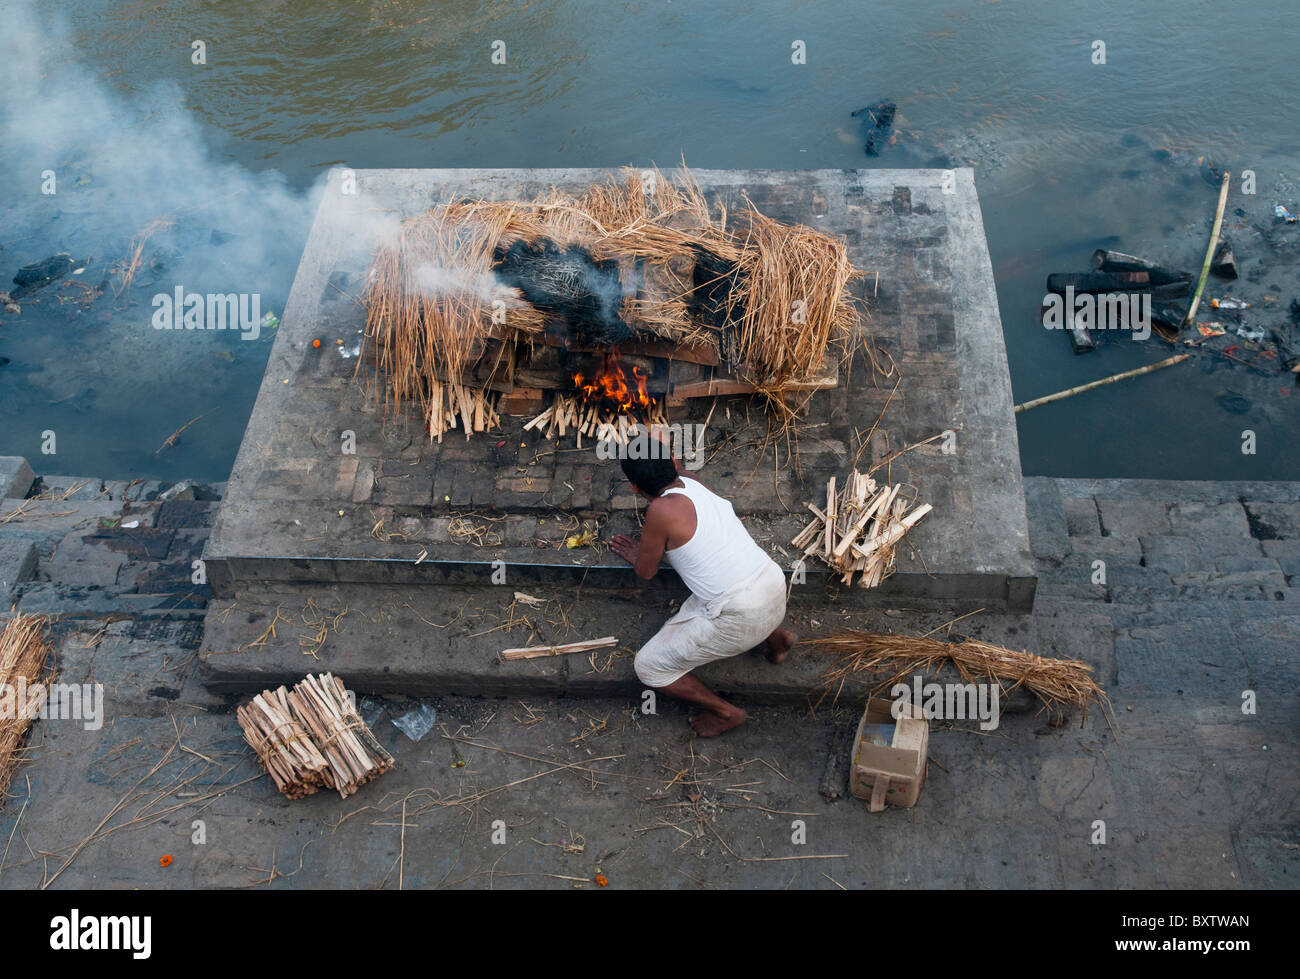 cremation ceremony on the Bagmati River at the Pahsupatinath Temple in Kathmandu, Nepal - Stock Image